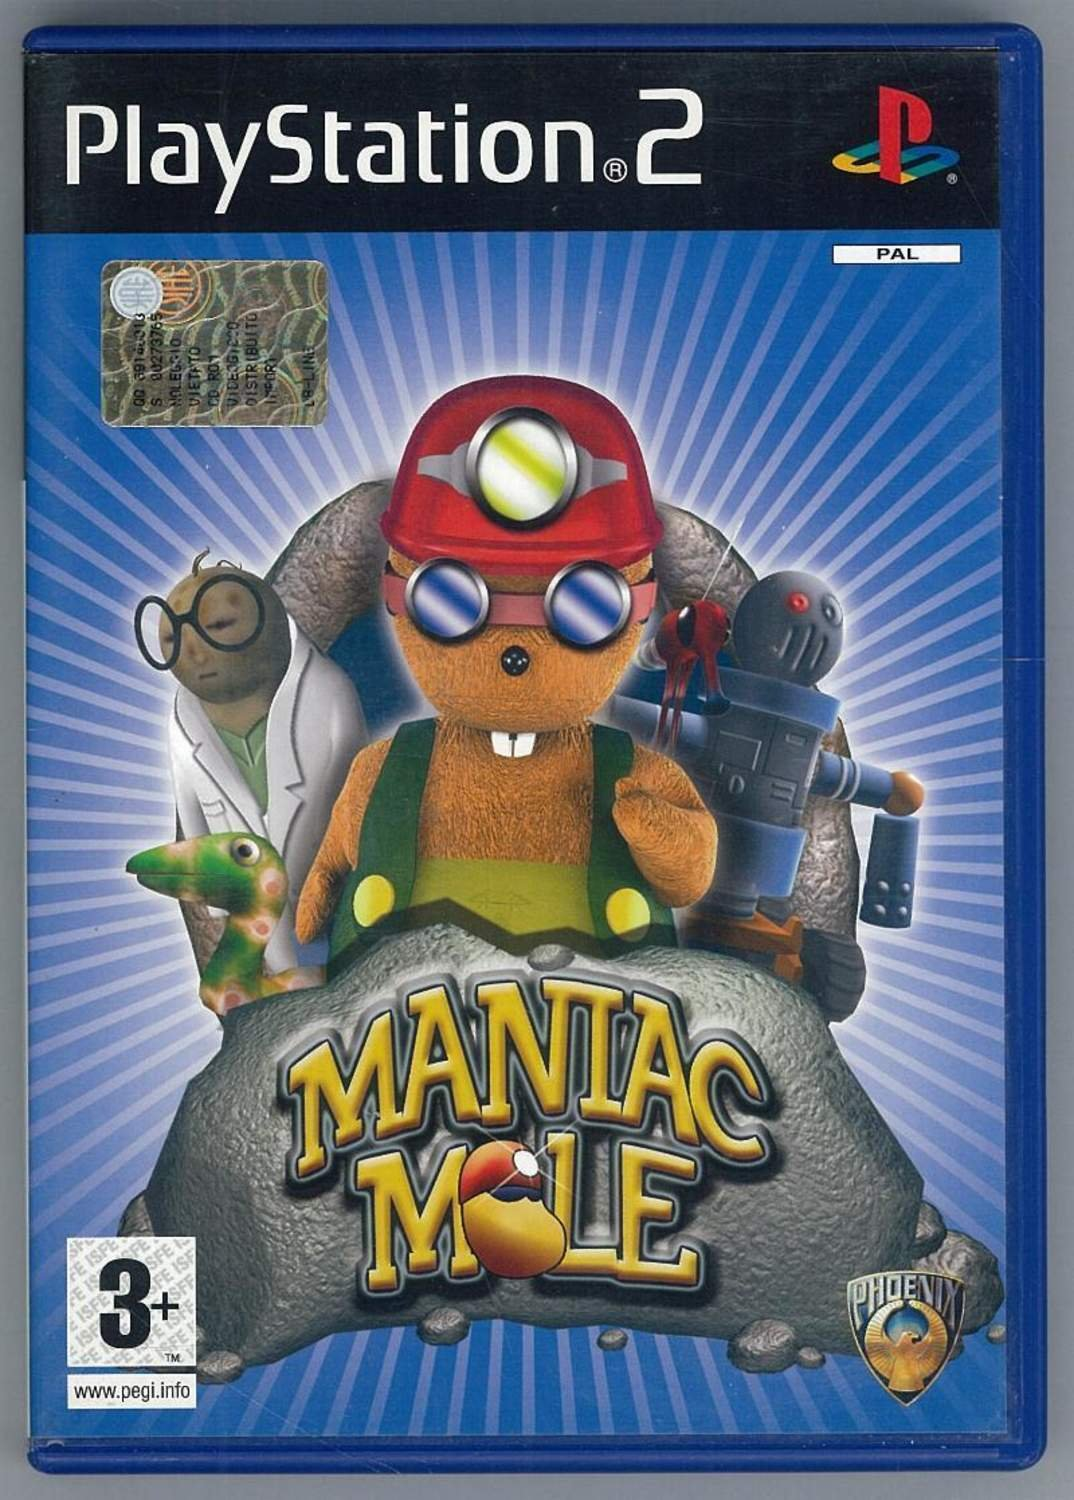 Maniac Mole - Playstation 2